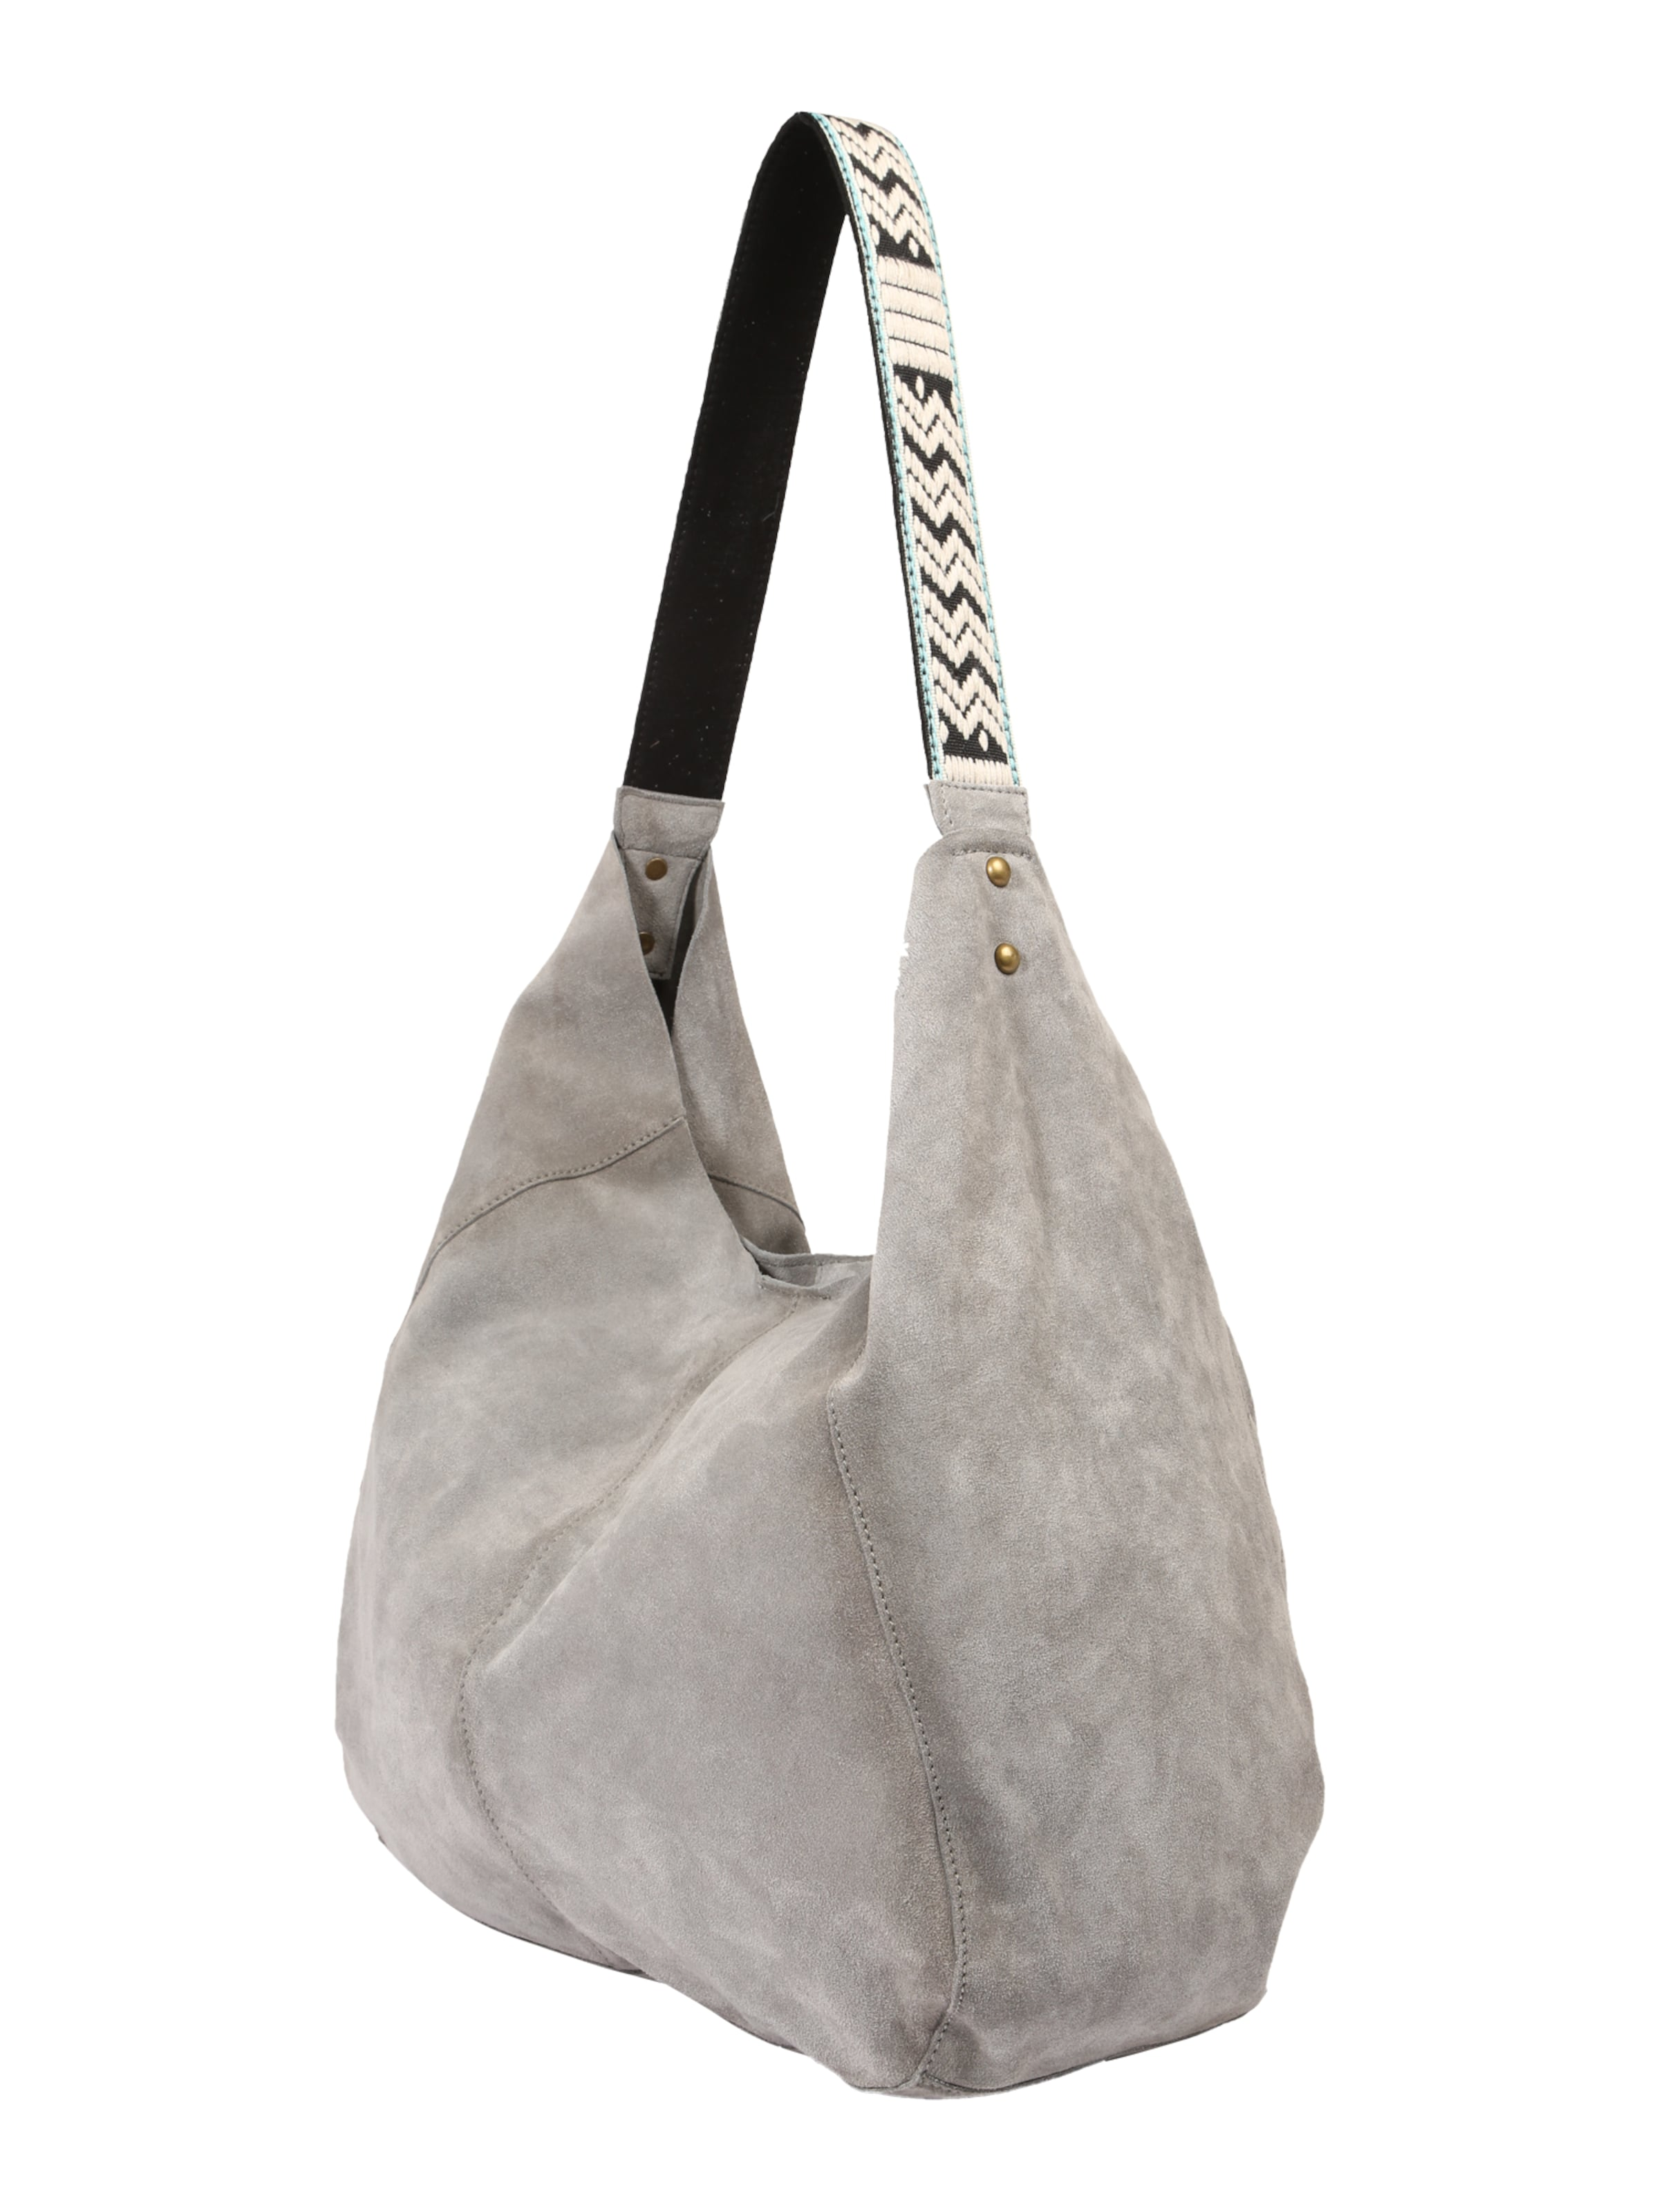 ABOUT YOU Hobo Bag 'Lesly' Freies Verschiffen Nagelneues Unisex rLnWp